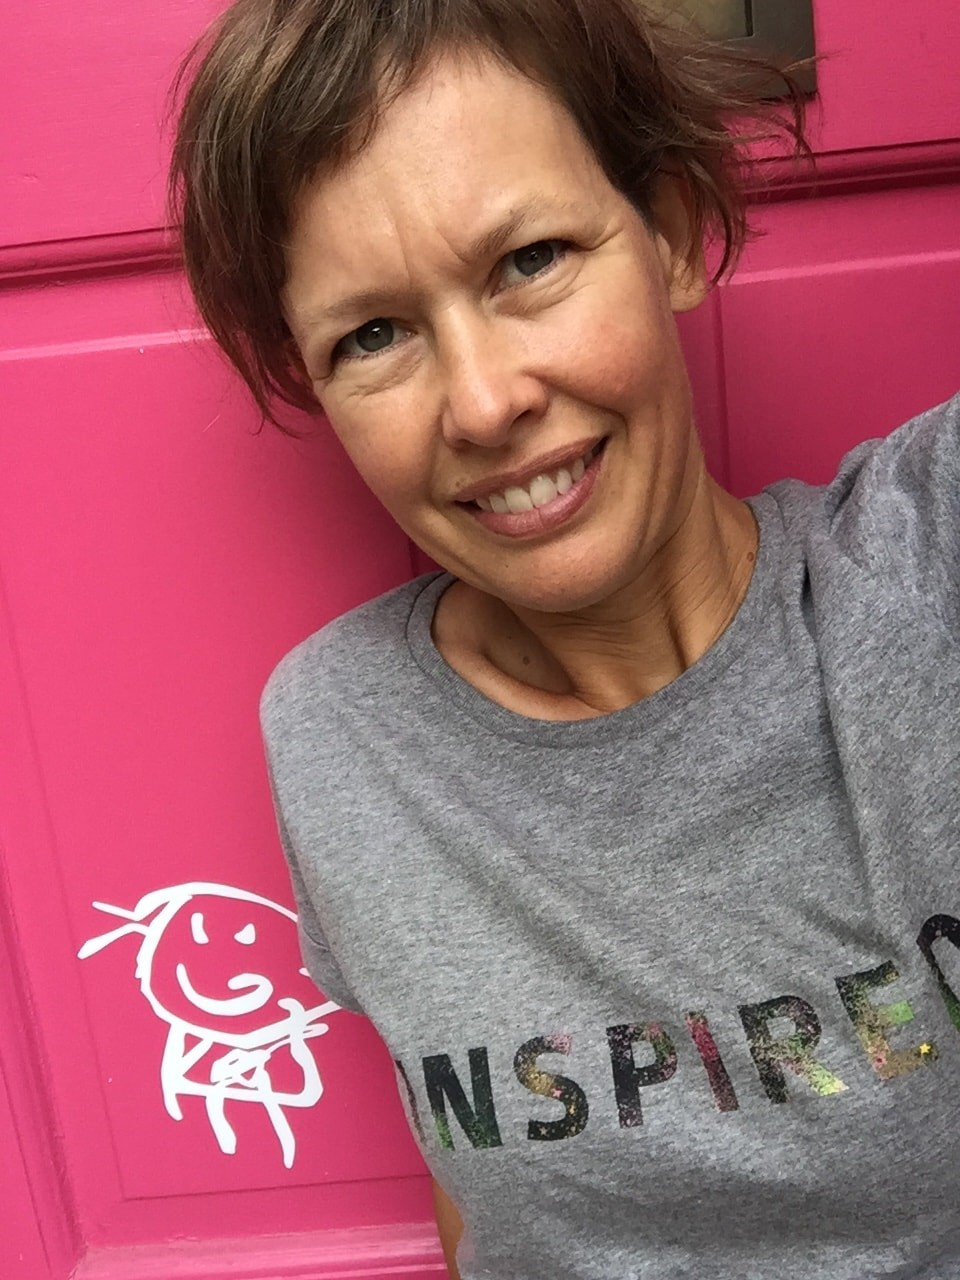 Junior meets Karen Willcox, founder of Quirky Lime   5 Minute Chats